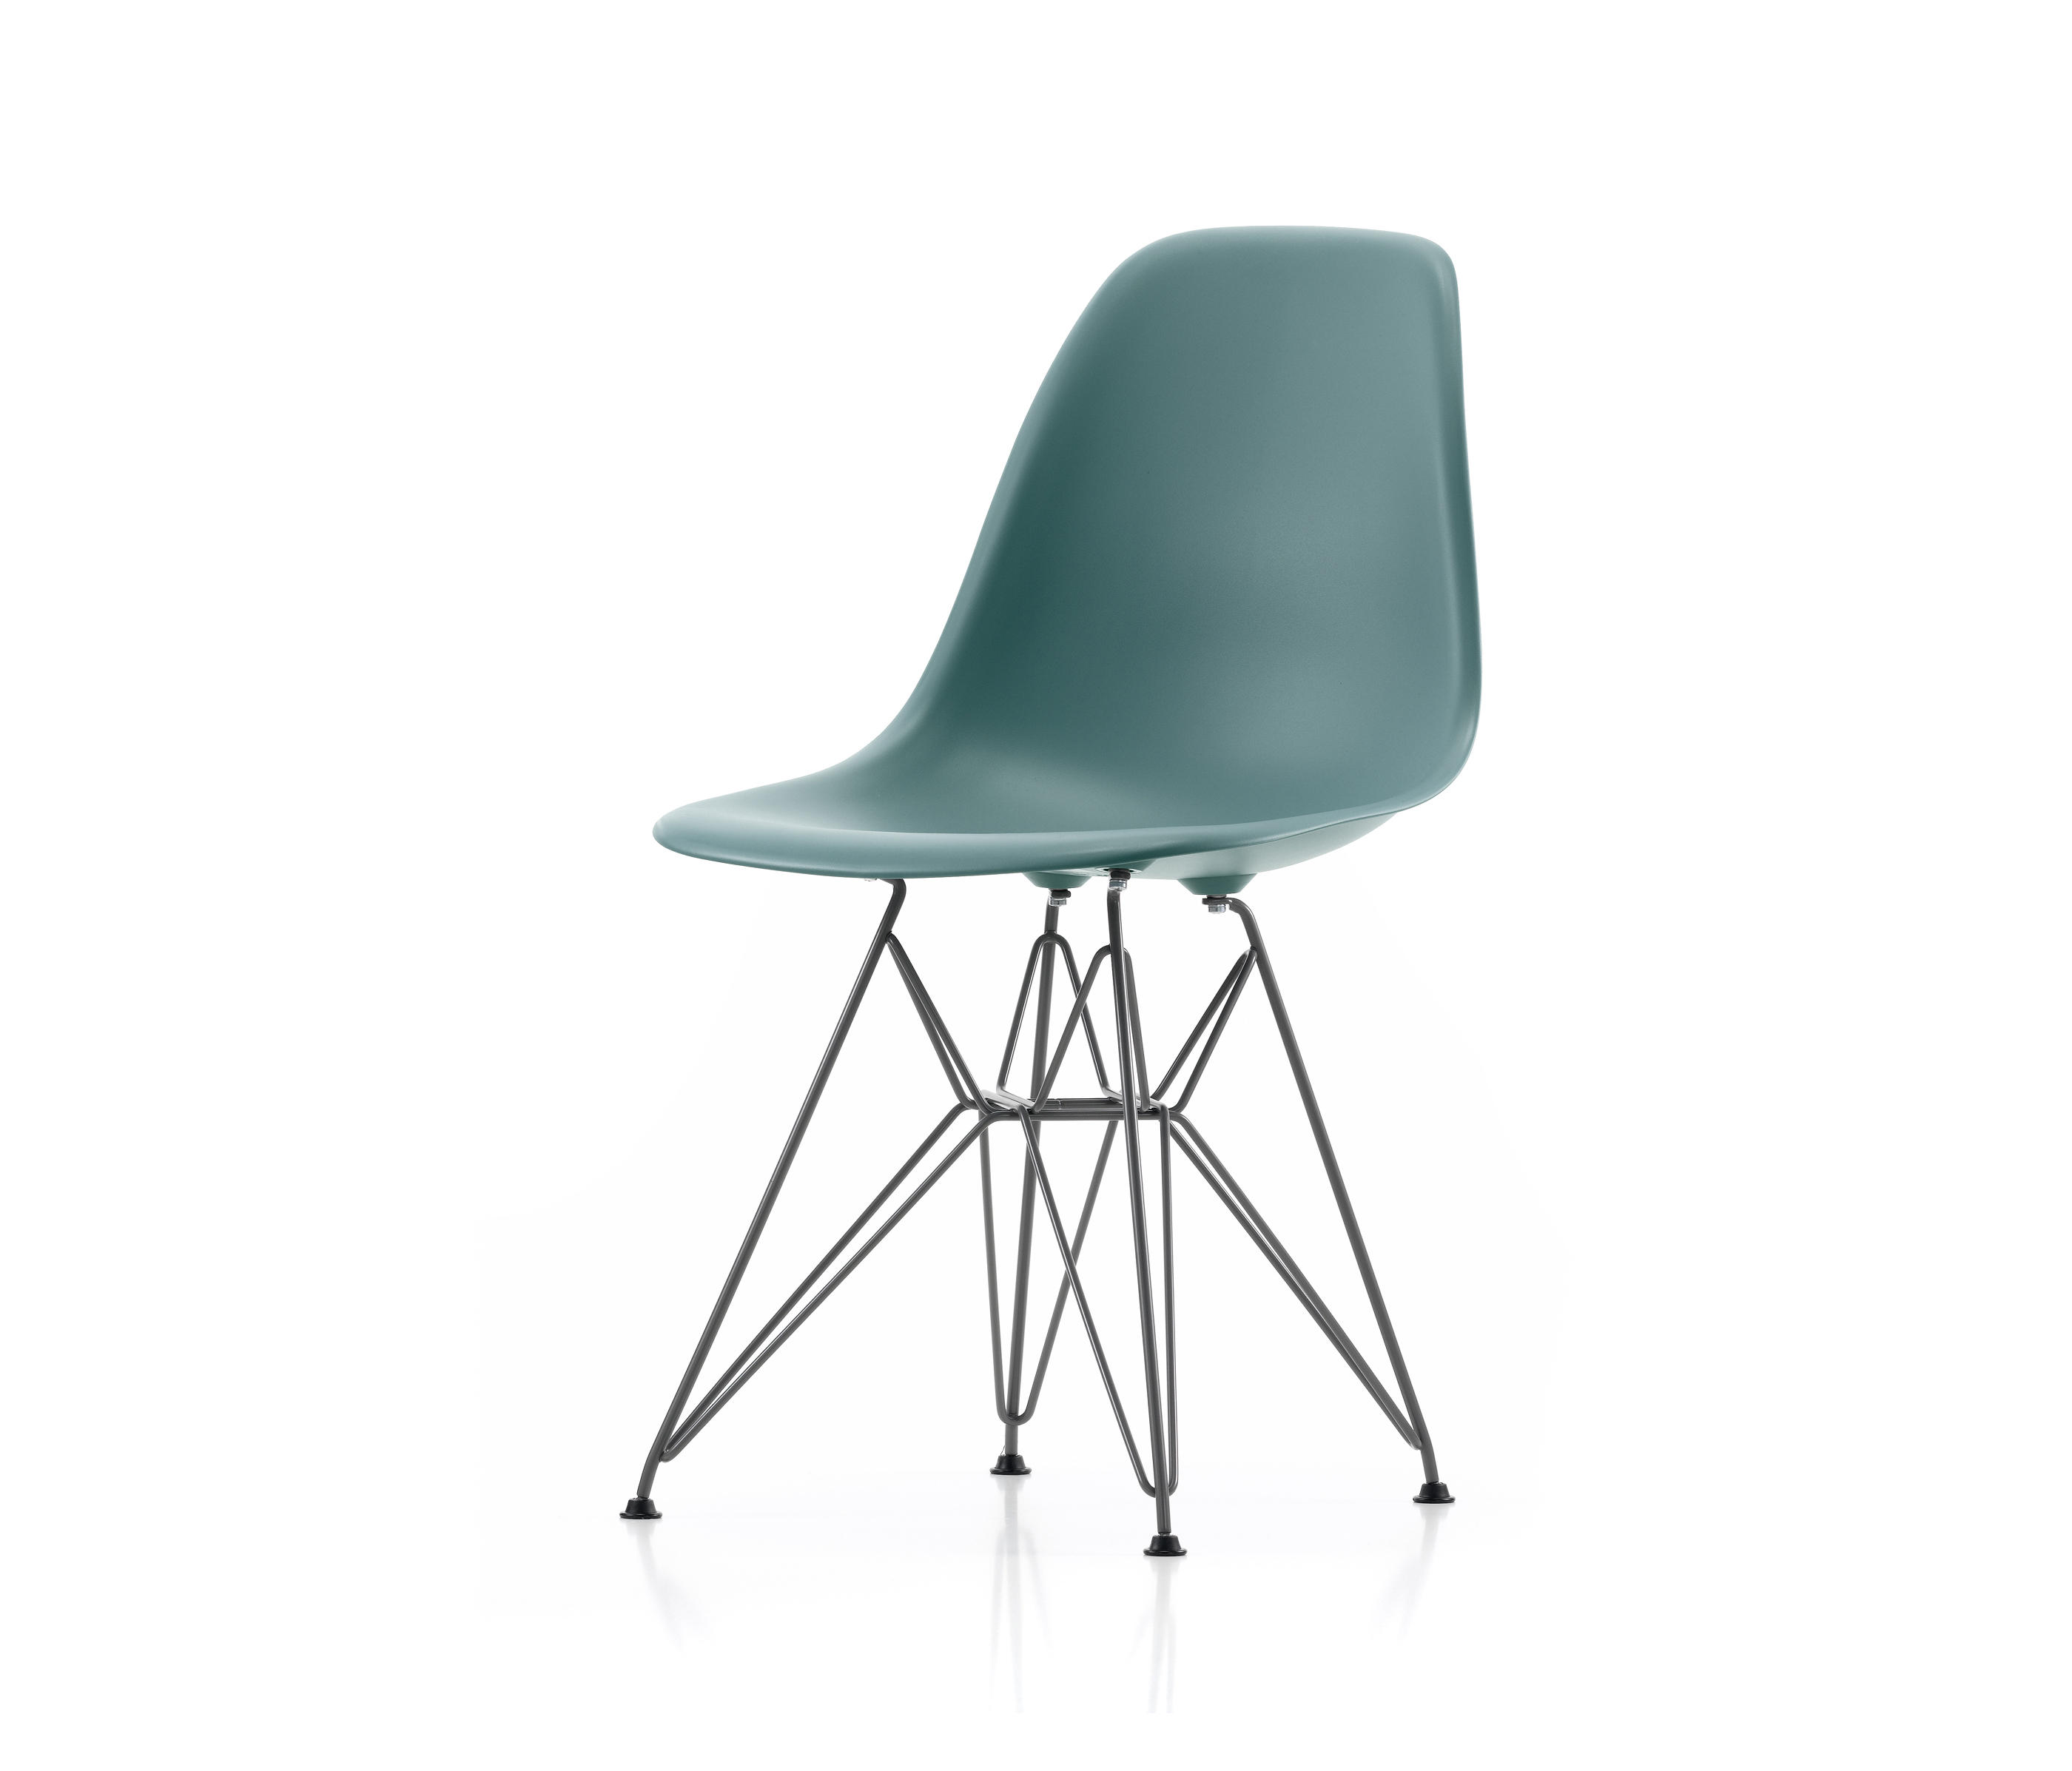 Sedia Wooden Eames Eames Plastic Side Chair Dsr Chairs From Vitra Architonic